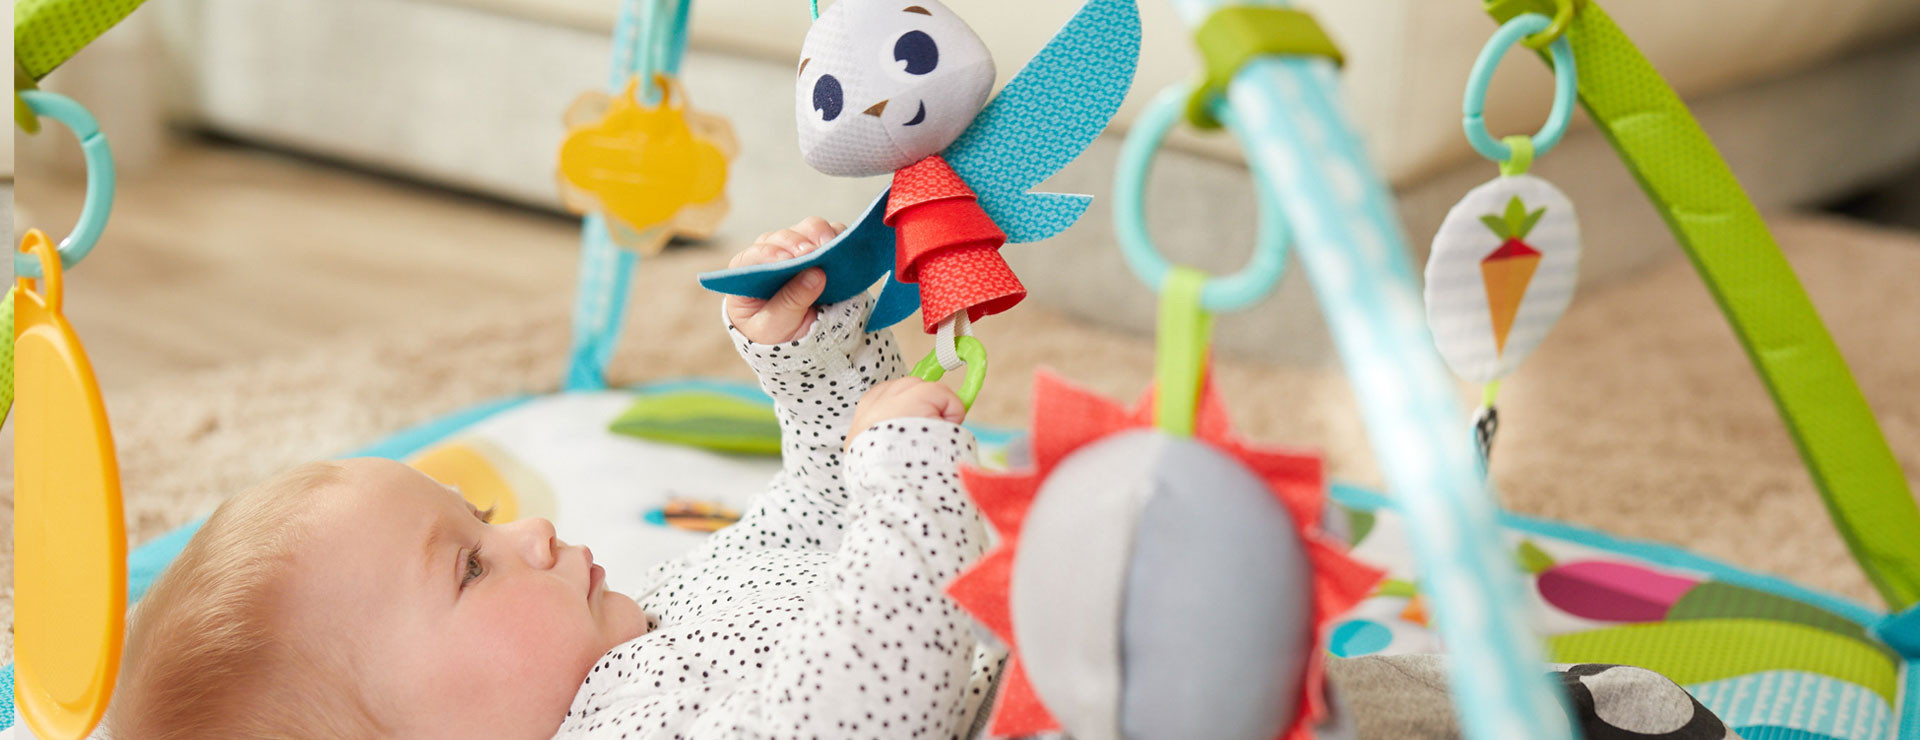 Adjustable rings and removable toys enable optimal stimulation based on baby's mood and needs